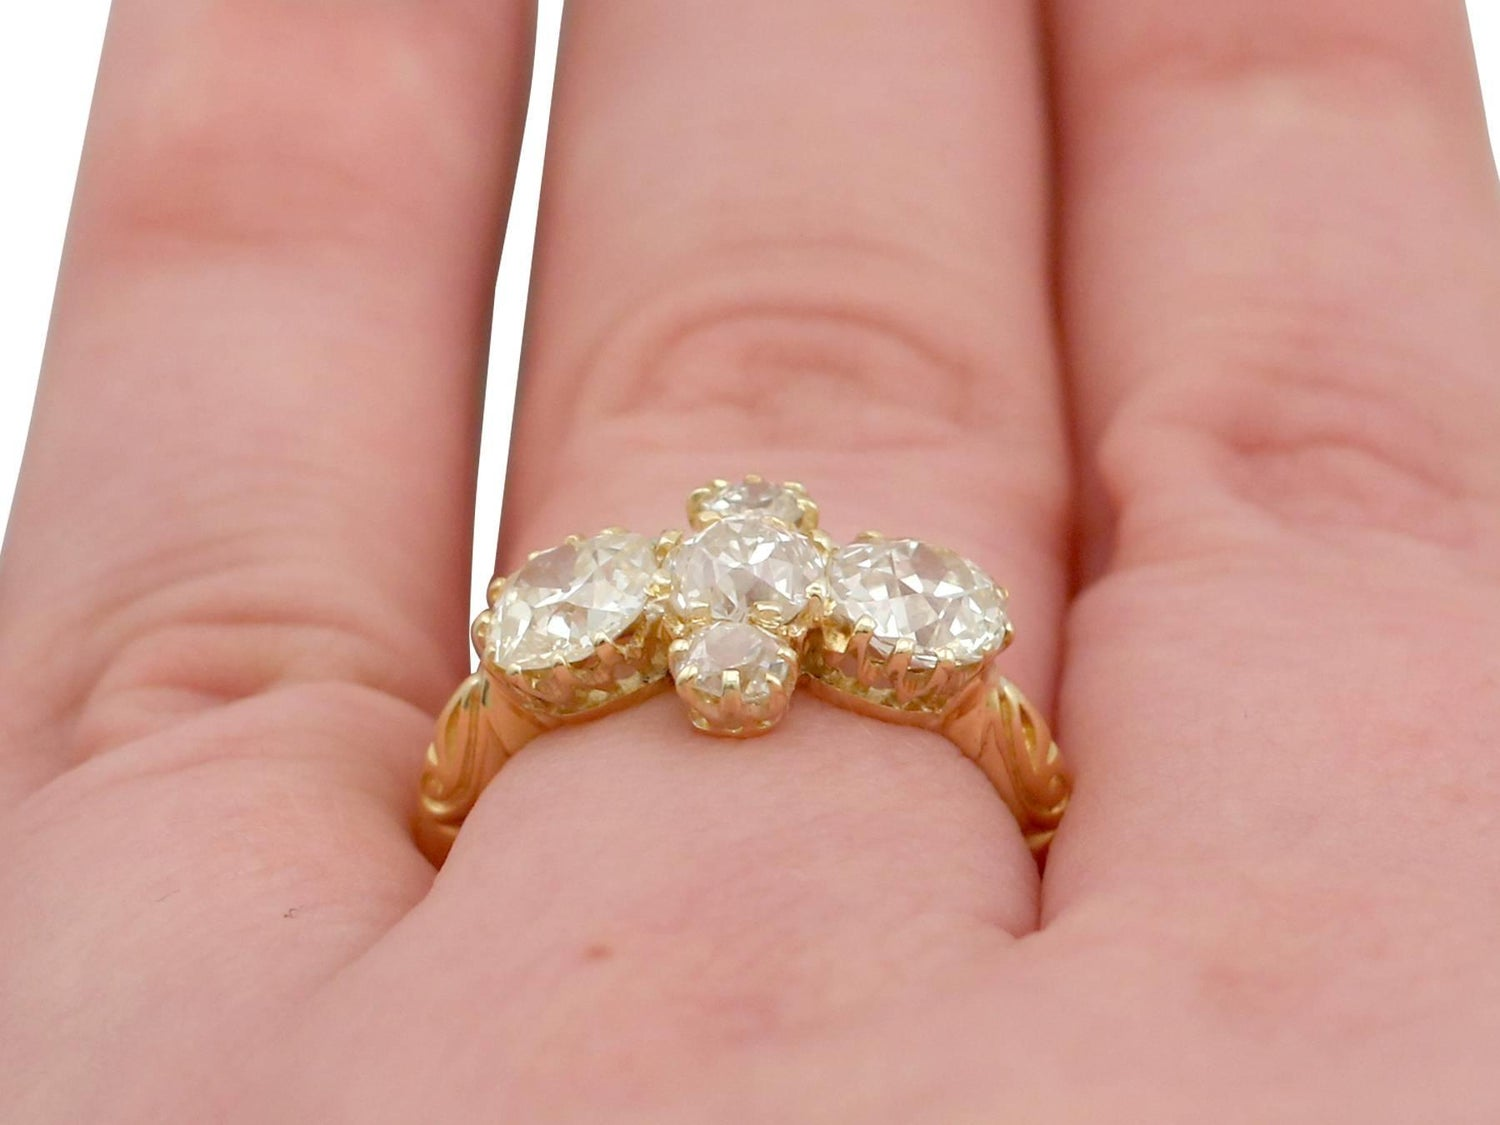 1890s Diamond and Yellow Gold Dress Ring For Sale at 1stdibs